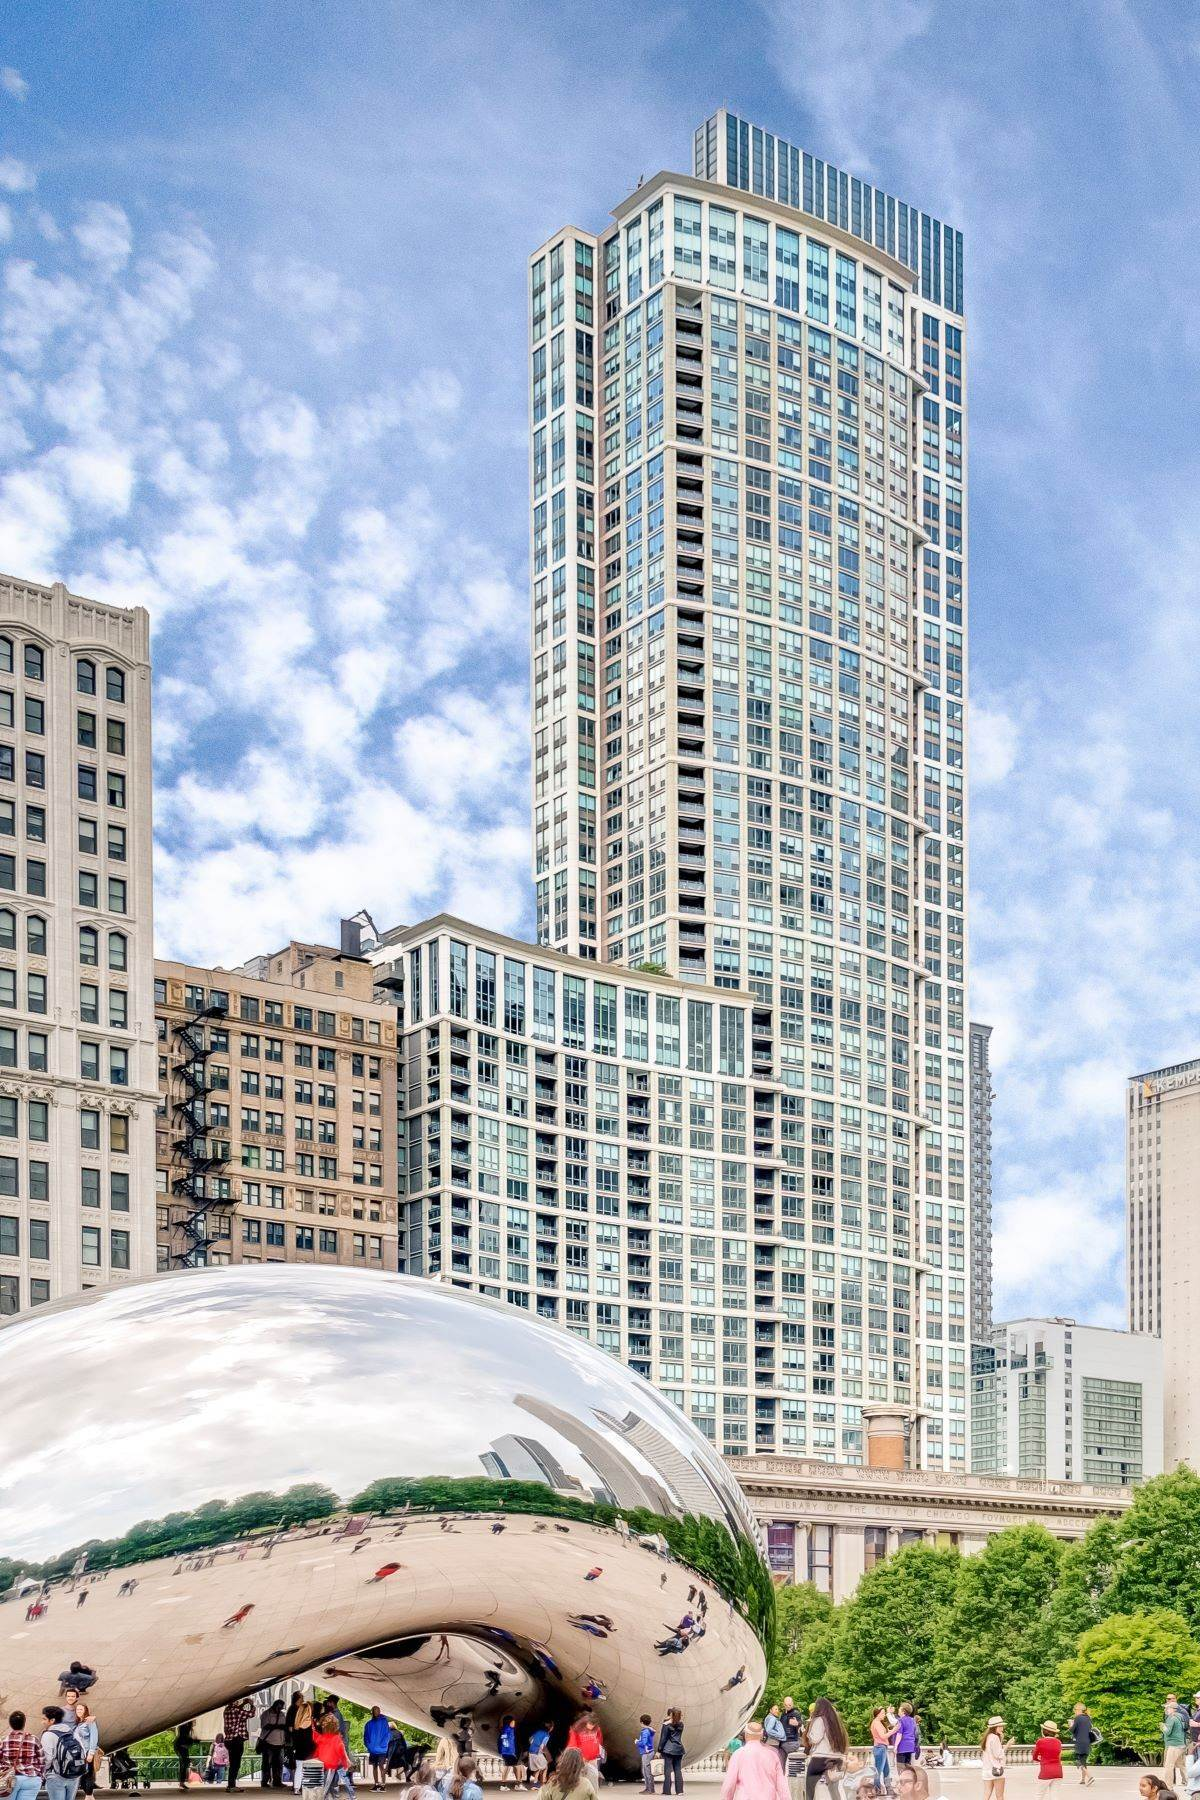 Condominiums at Luxury Millennium Park Four Bedroom Condo 130 N Garland Court, Unit 2803 Chicago, Illinois 60602 United States